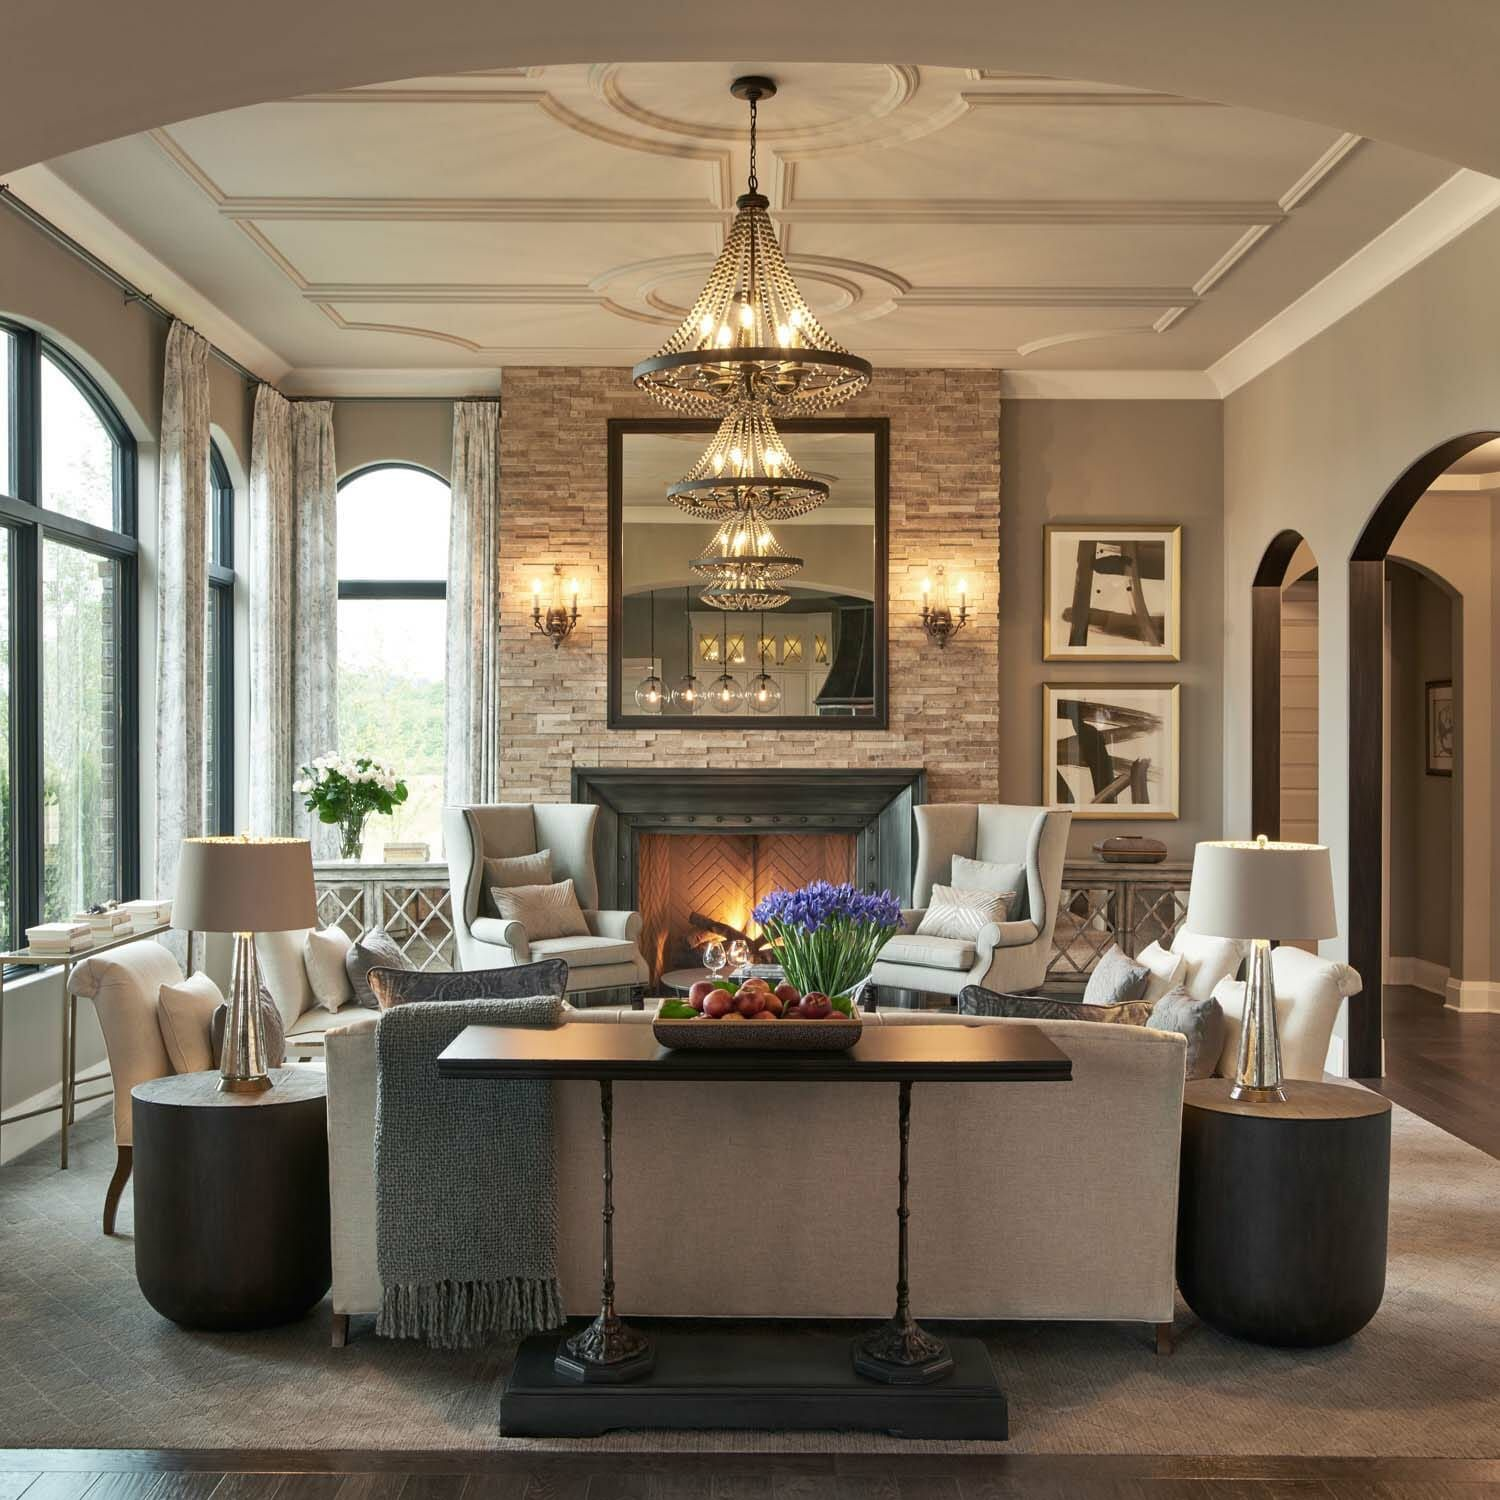 Restoration Hardware styled model home with gorgeous interiors in Michigan #restorationhardware